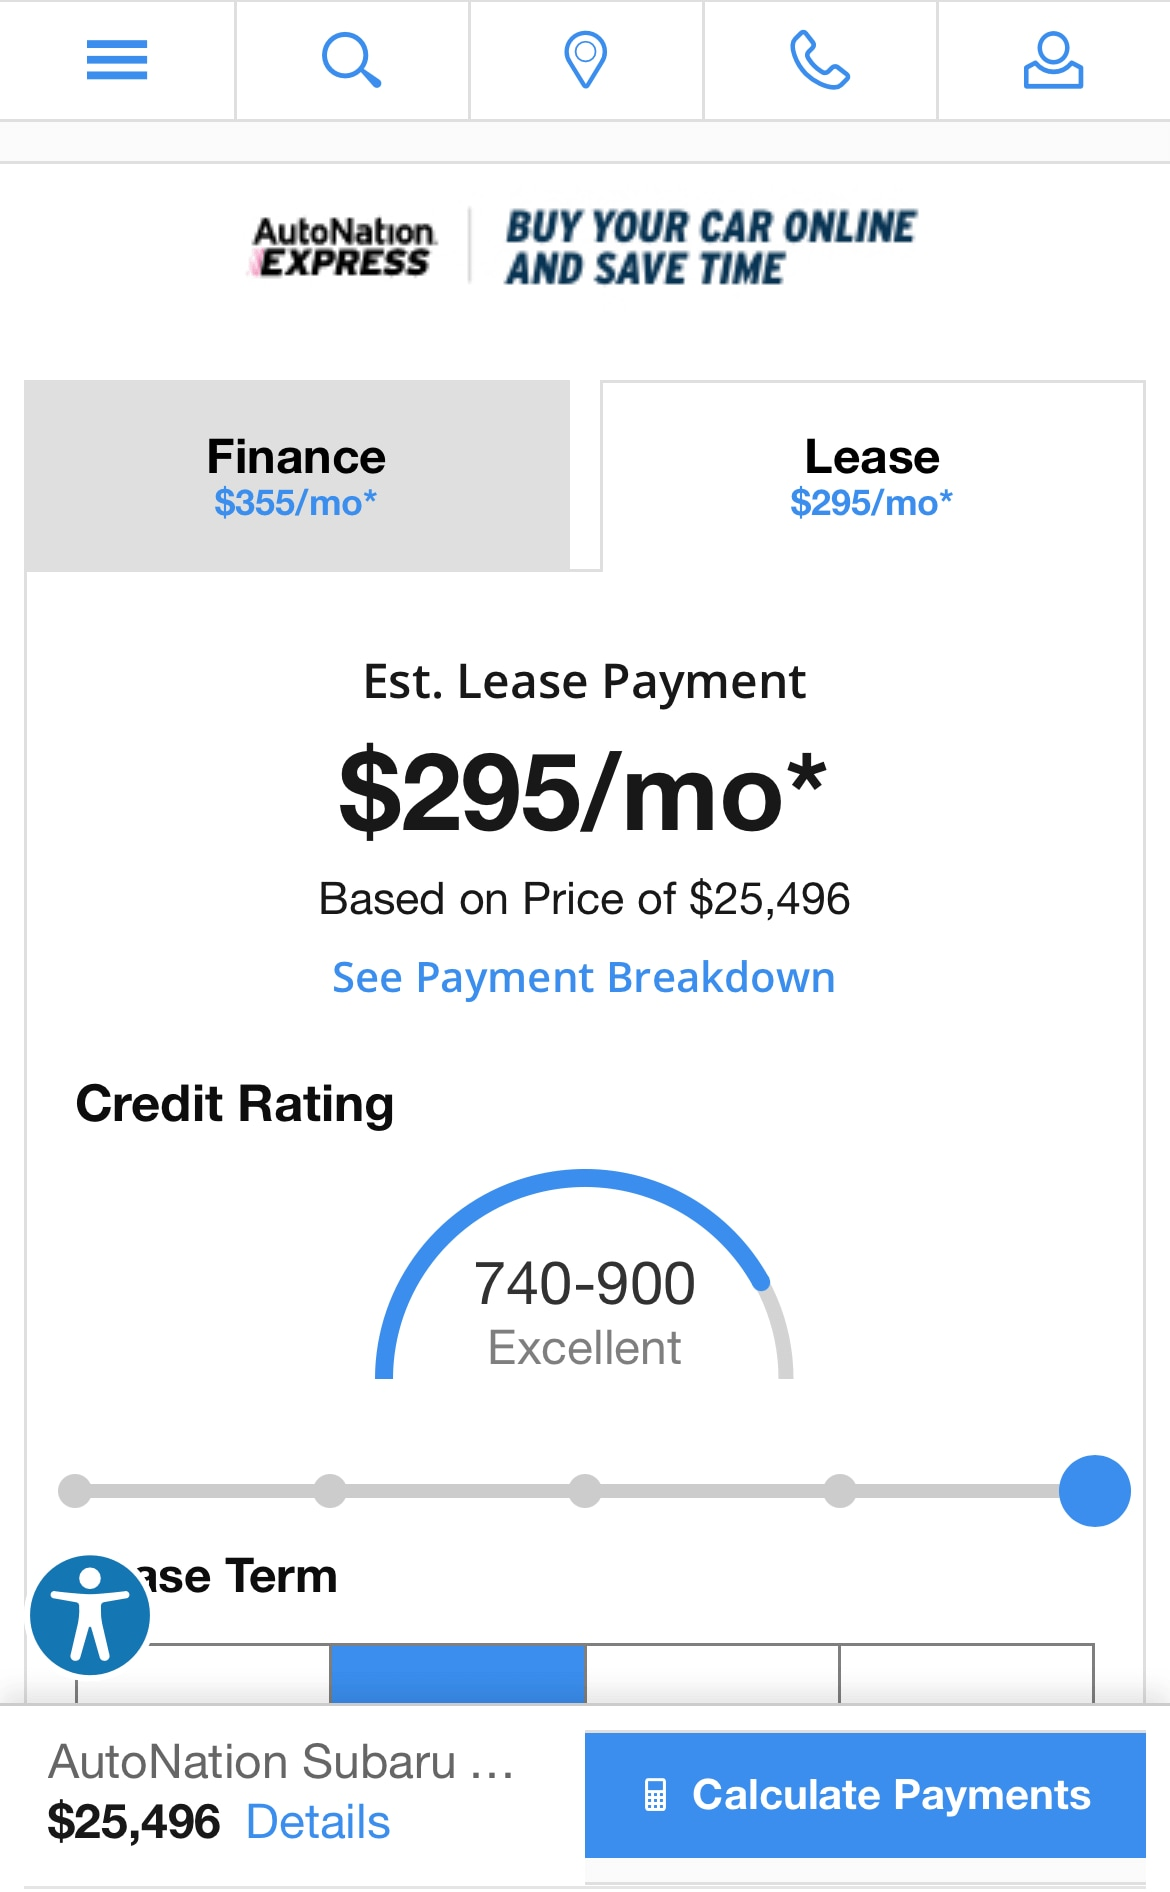 AutoNation Express payment calculator on a mobile device